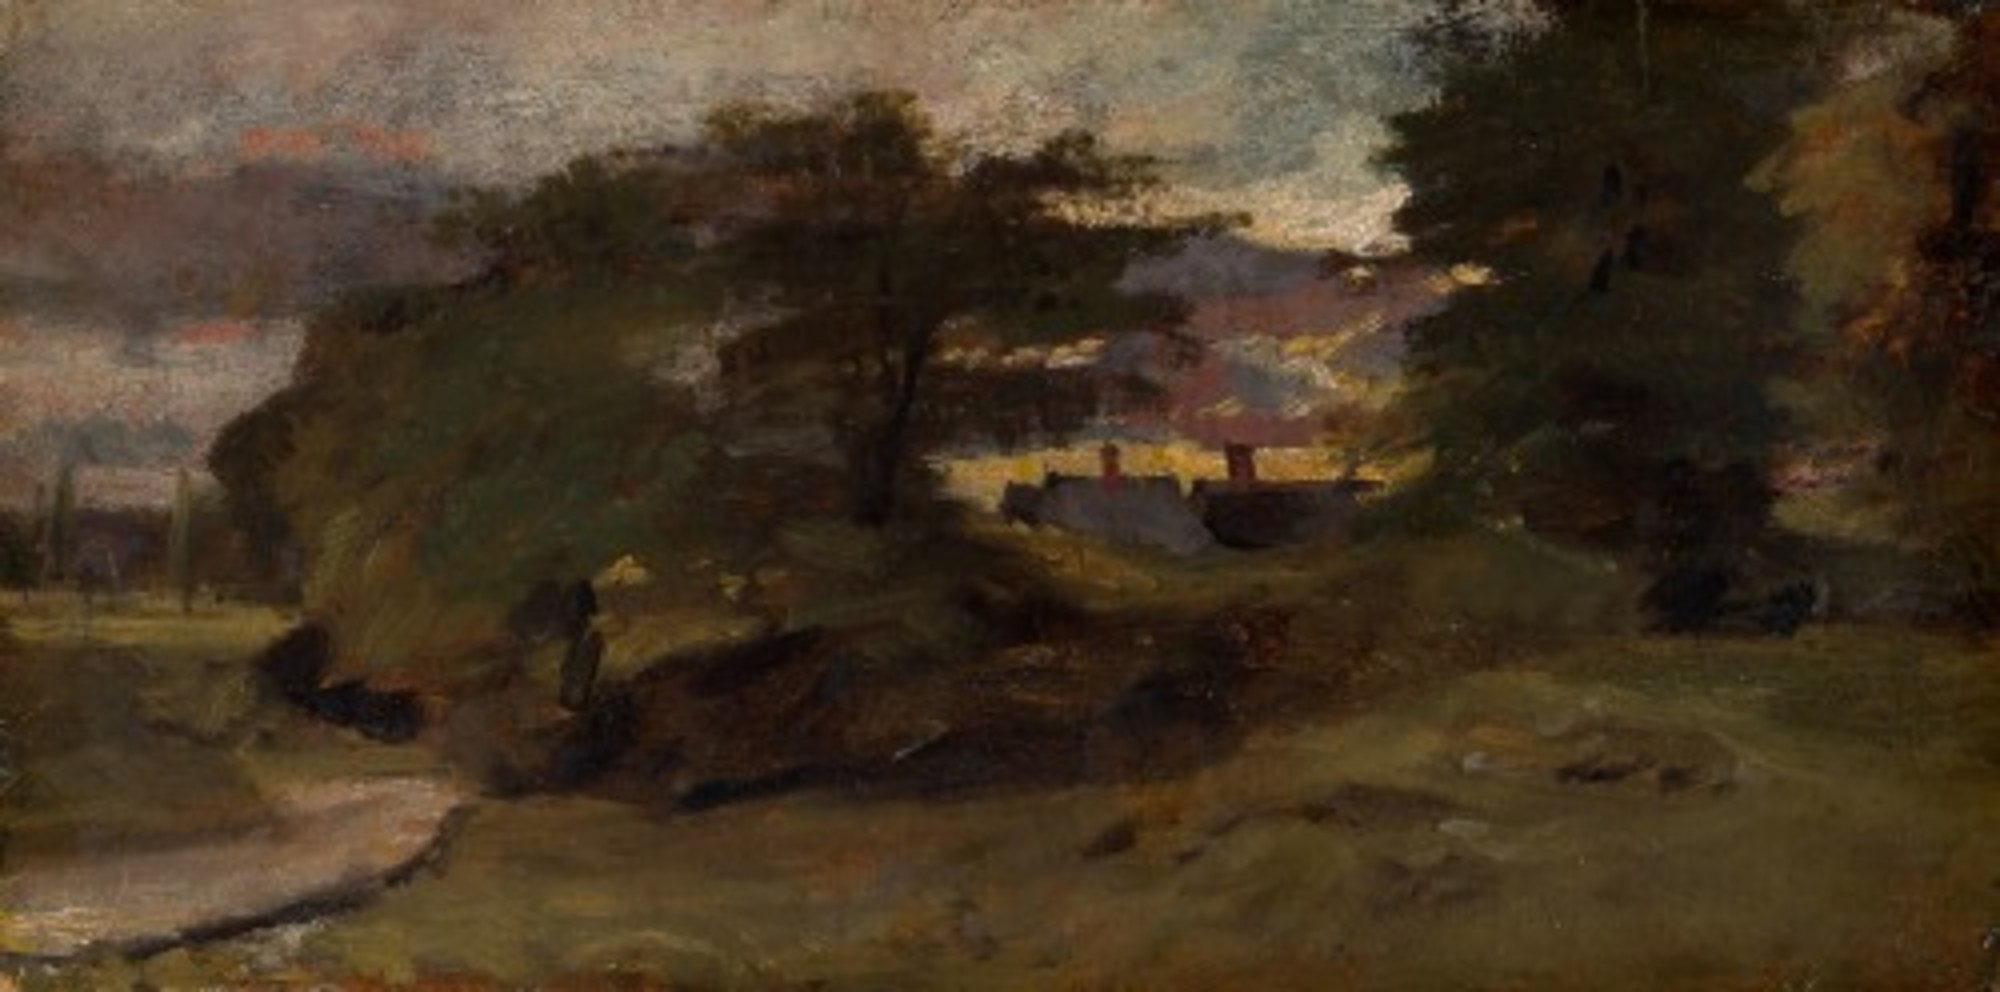 John_Constable_-_Landscape_with_Cottages_-_1944.1_-_Art_Institute_of_Chicago.jpg